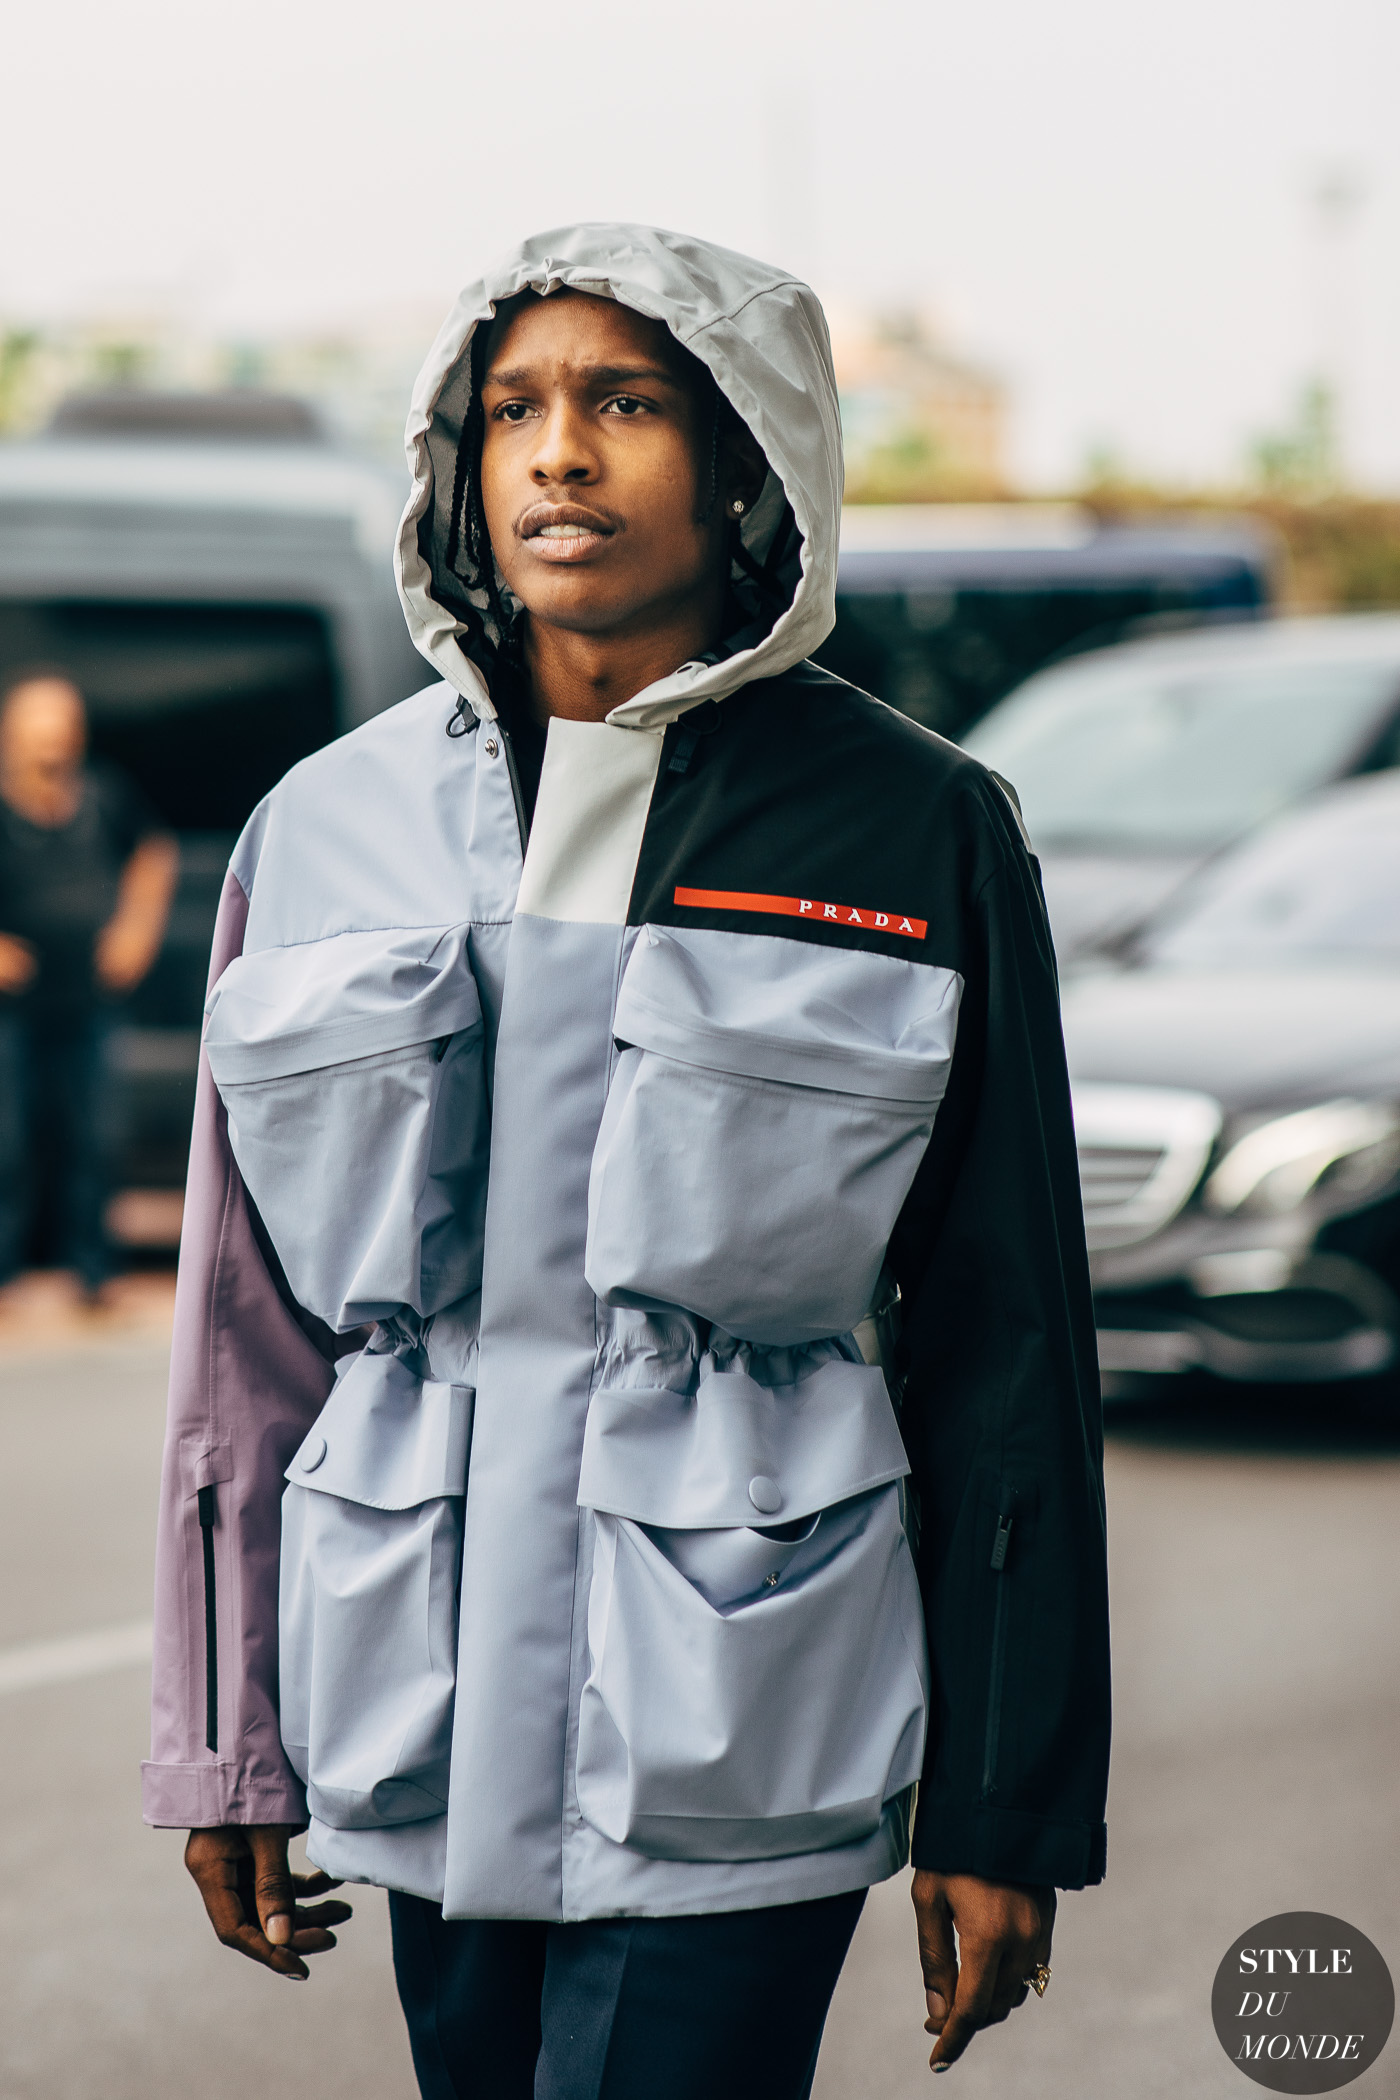 asap rocky wearing a grey and black jacket strutting on the street